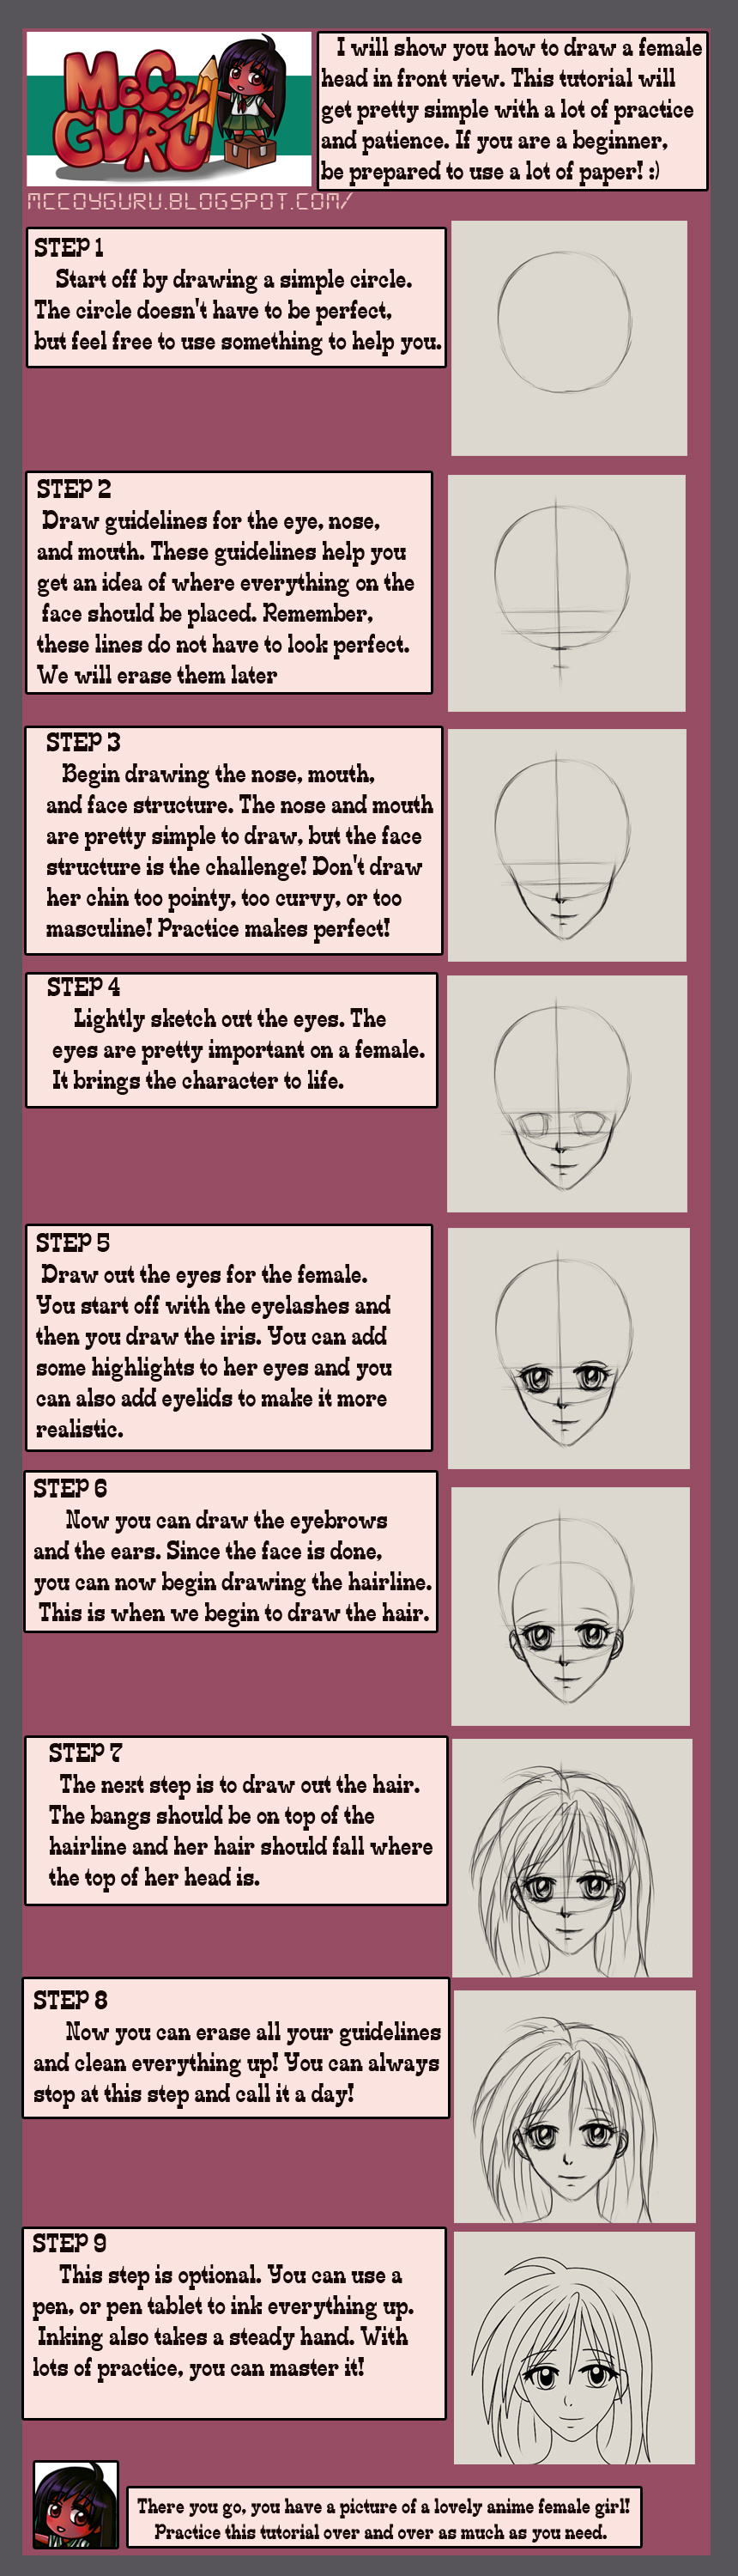 How to Draw An Anime Female Front View Head by Jalisha